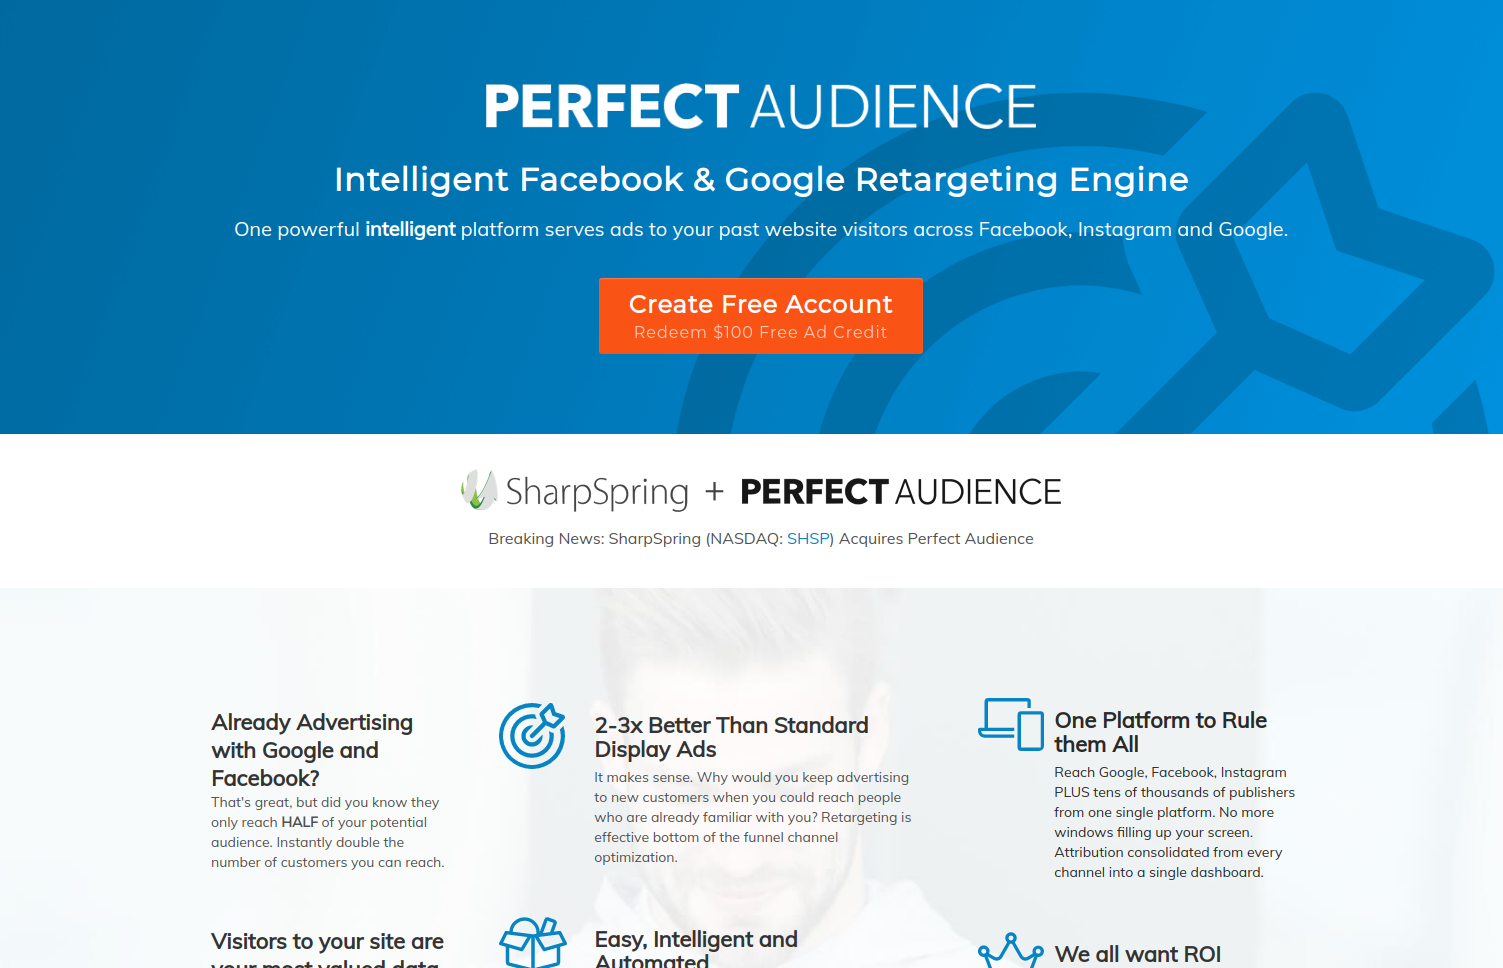 Perfect Audience Easiest Retargeting Solution screenshot